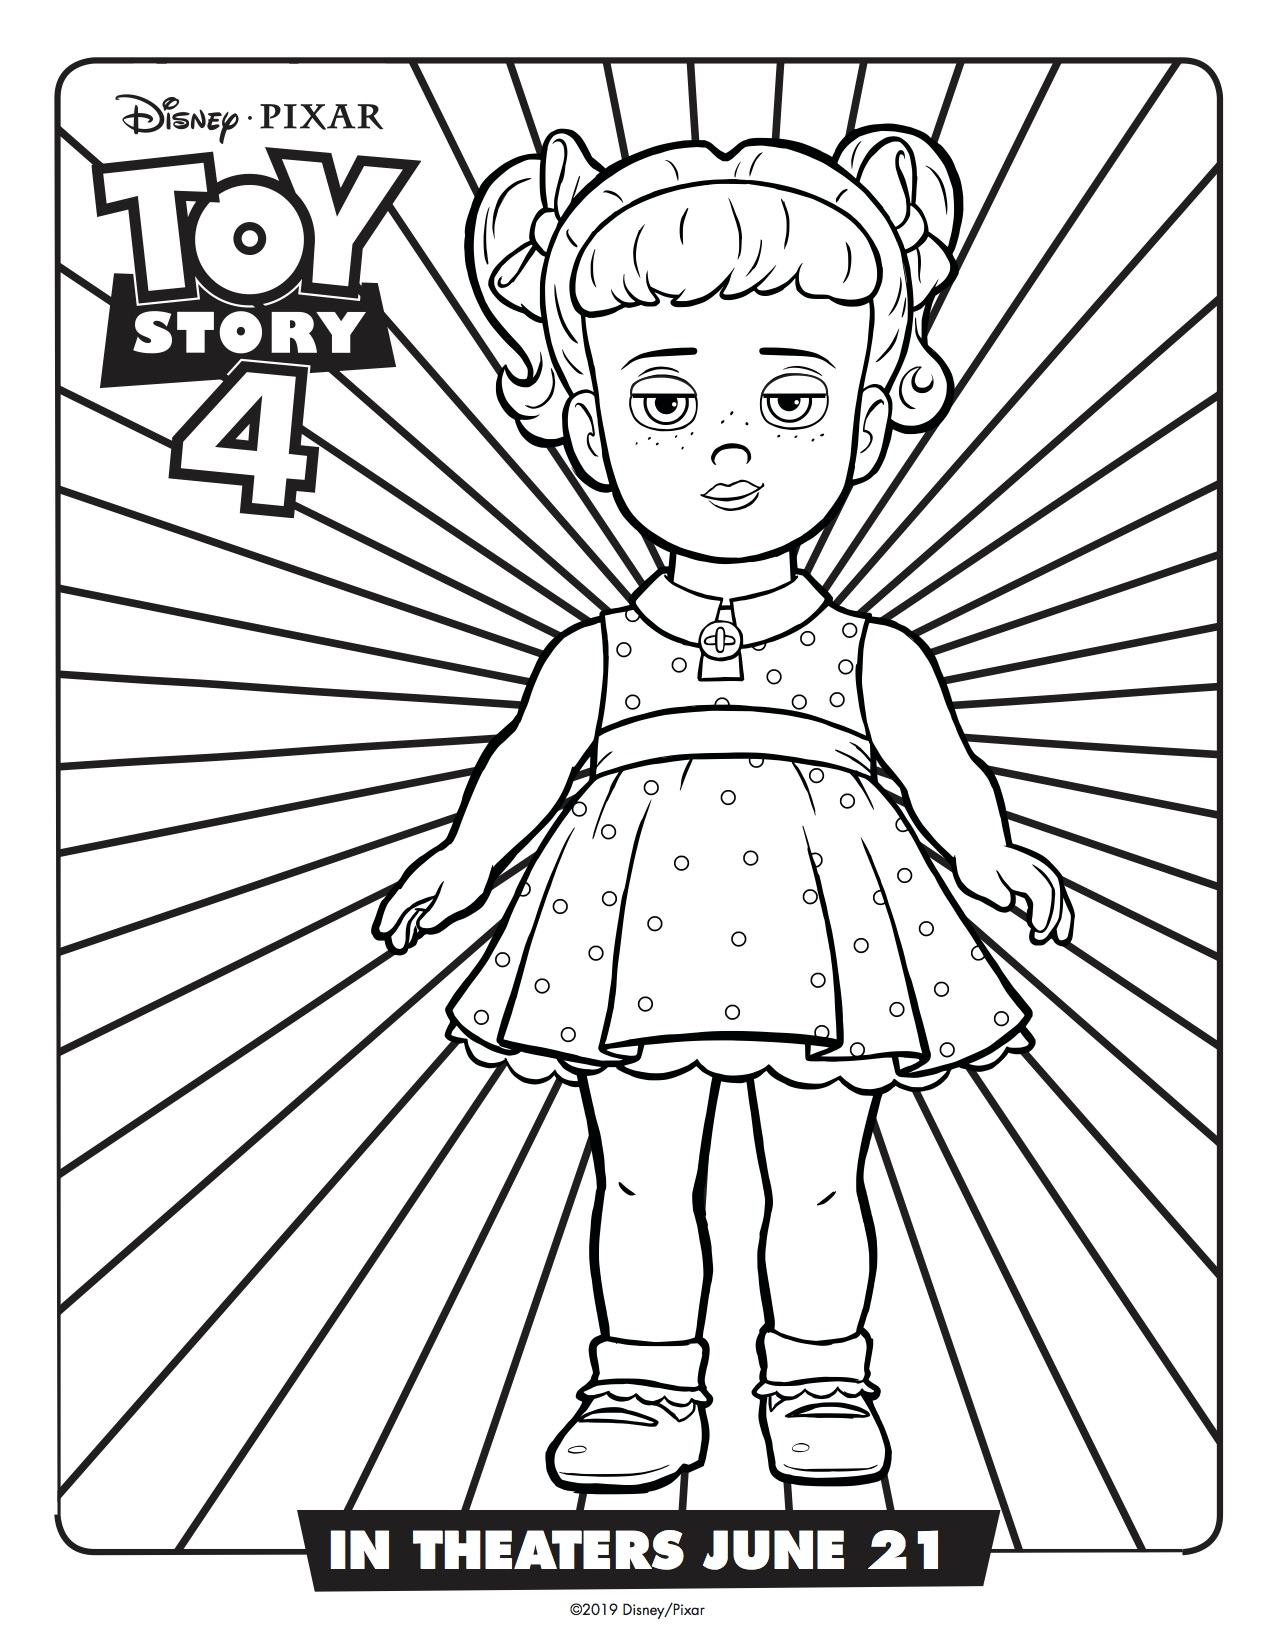 Toy-Story-4-Gabby-Gabby-Printable-Coloring-Page Simply ...